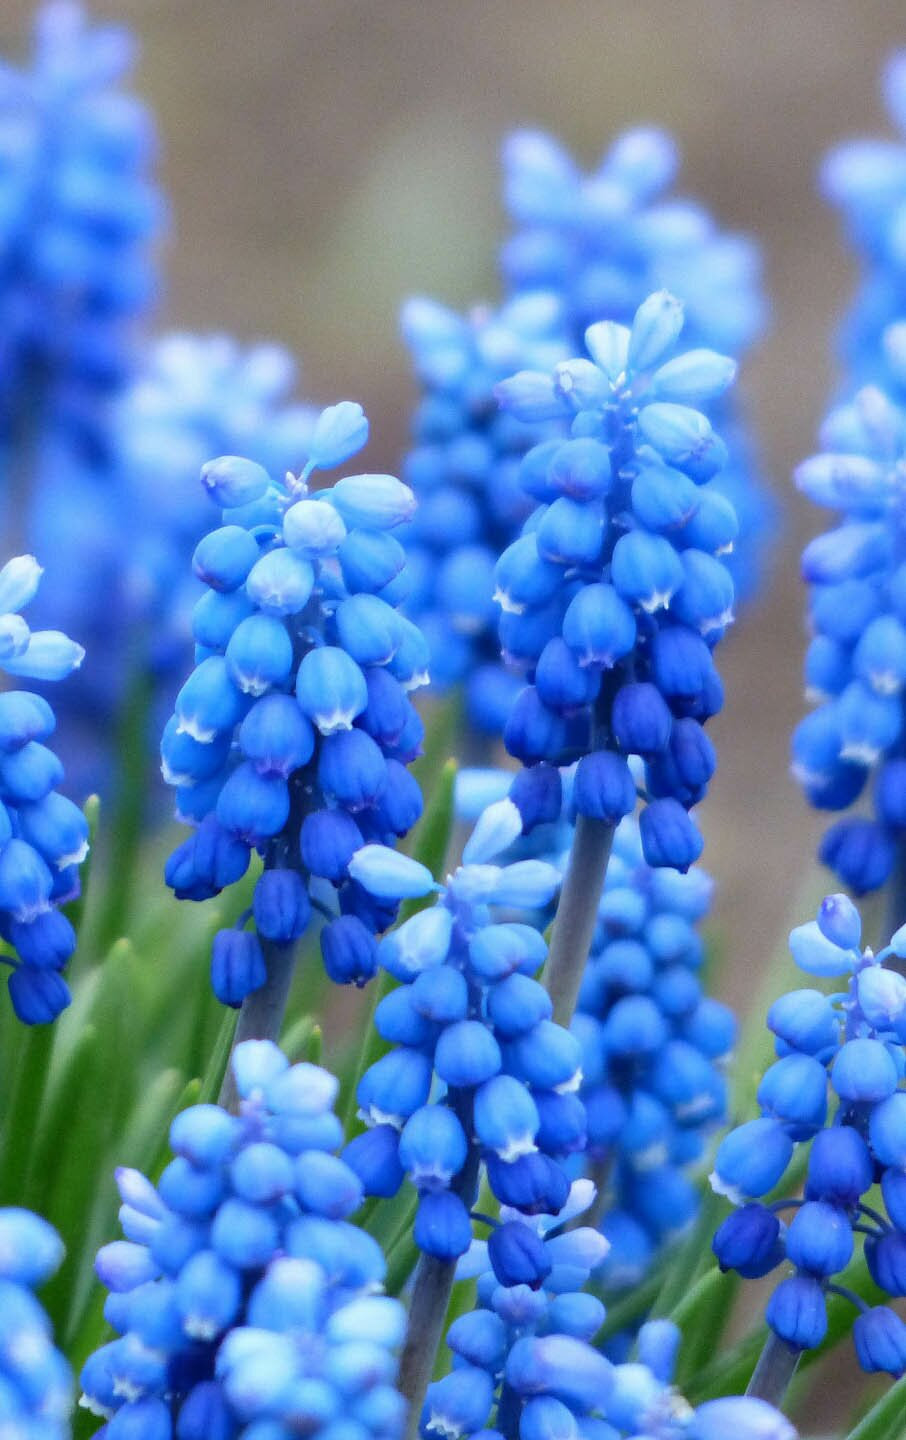 Muscari flower photos, 35 best flower photos